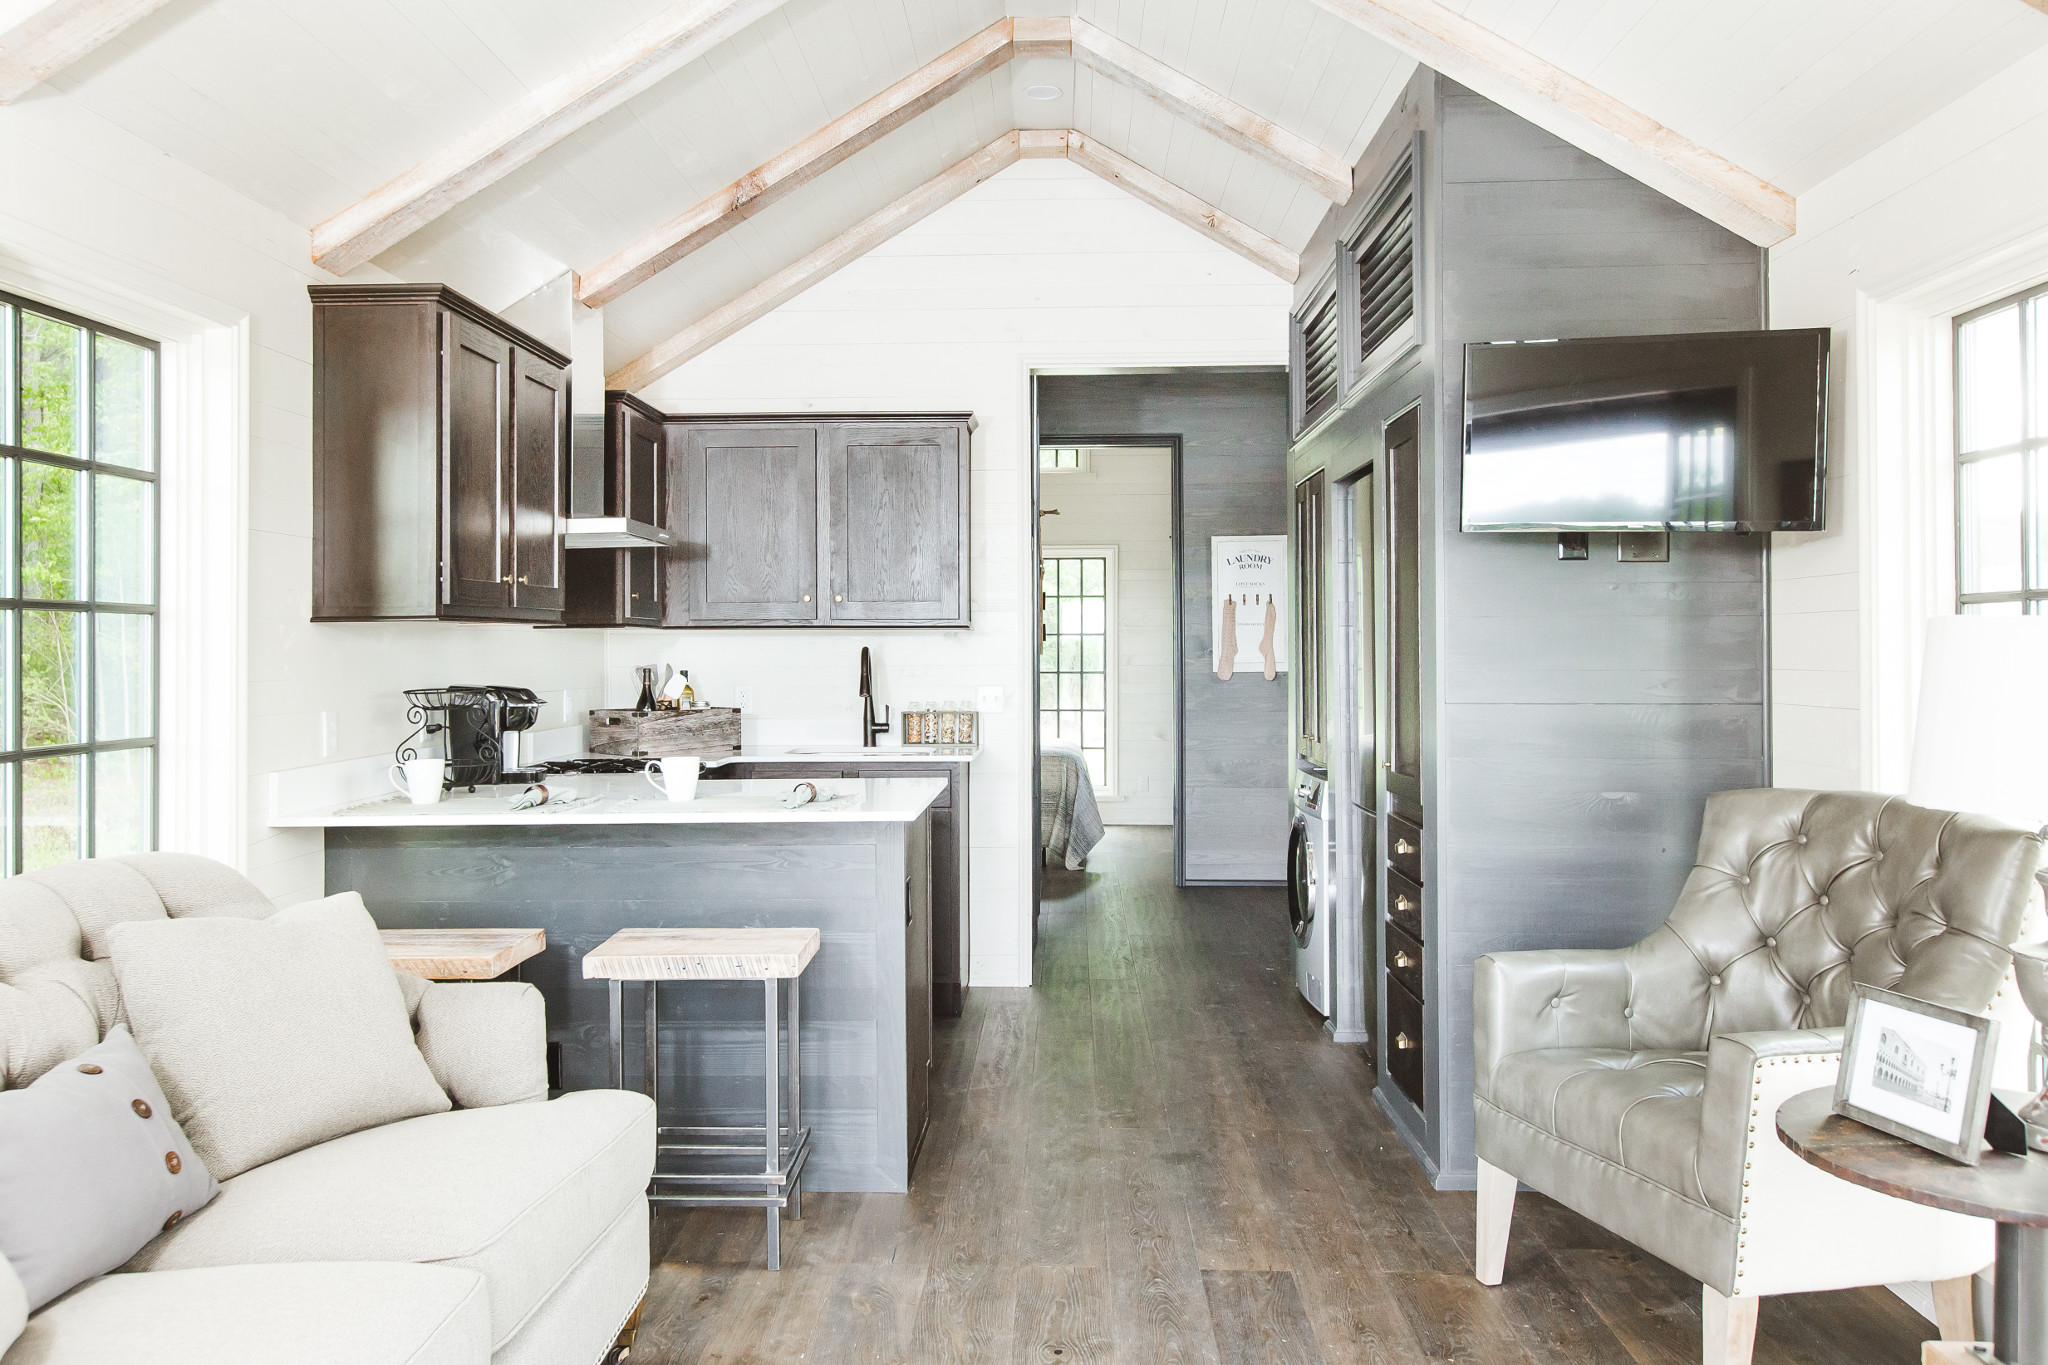 Clayton Introduces Tiny Home at Berkshire Hathaway Shareholders Meeting